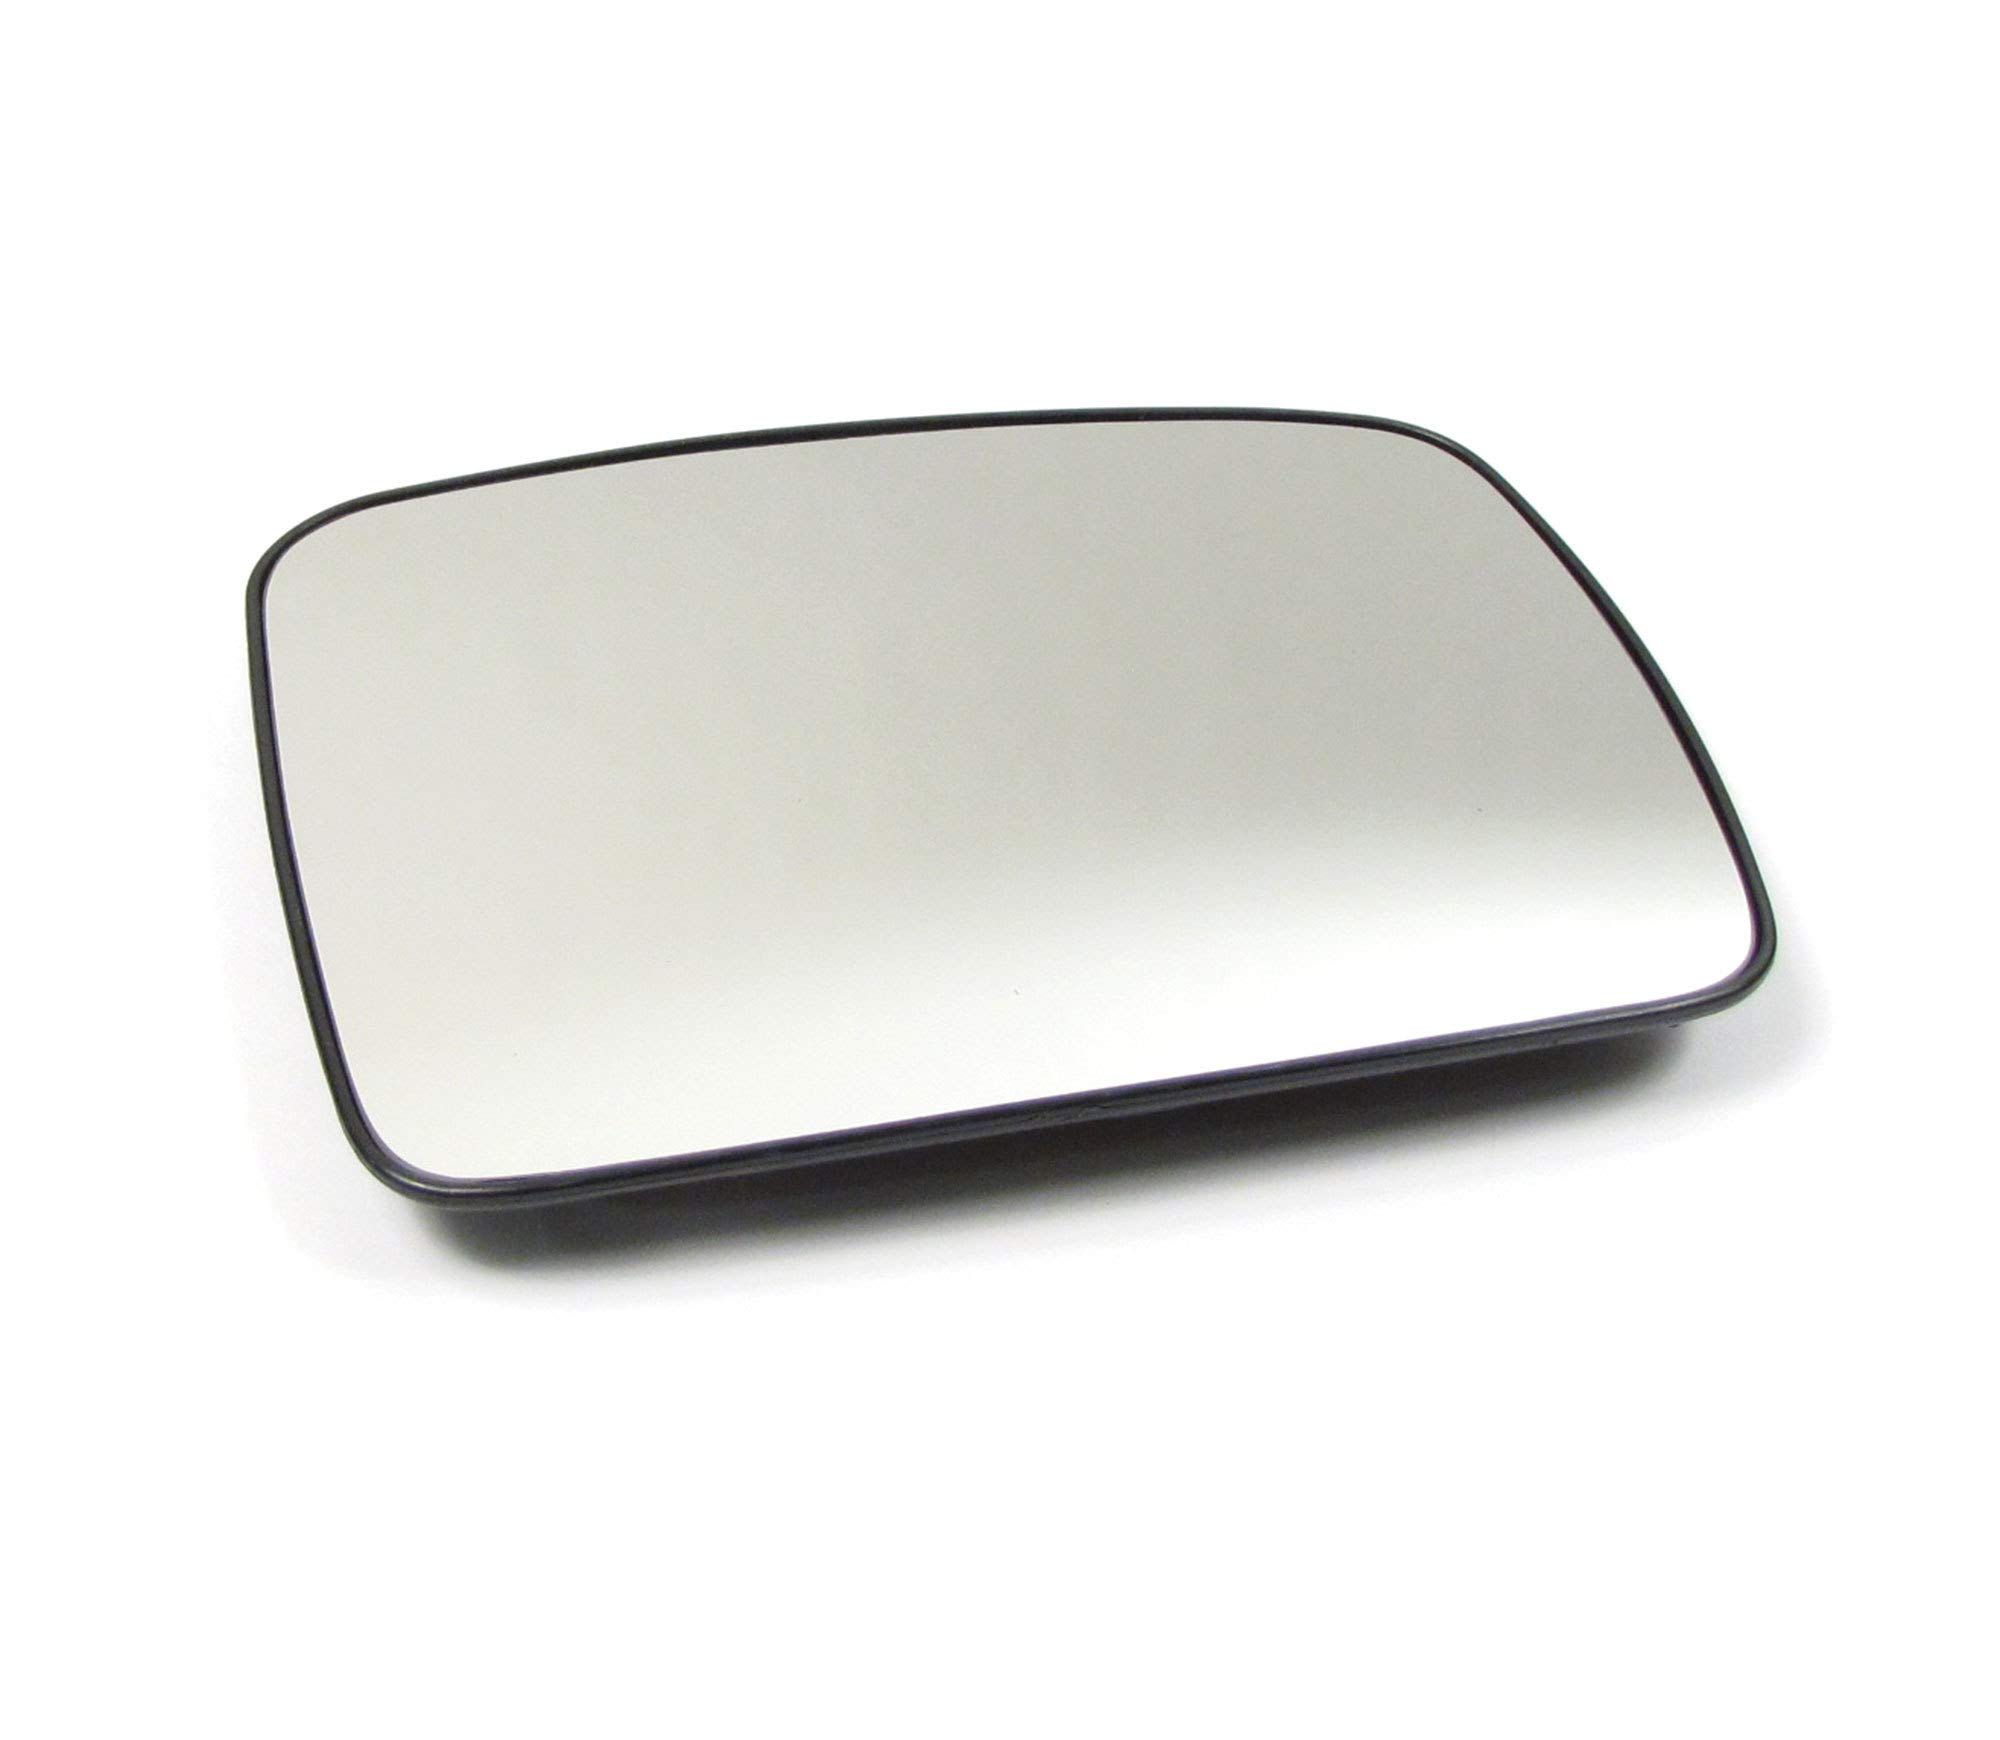 Passenger Side Convex Mirror Glass LR017067 for Land Rover LR2, LR3, and Range Rover Sport